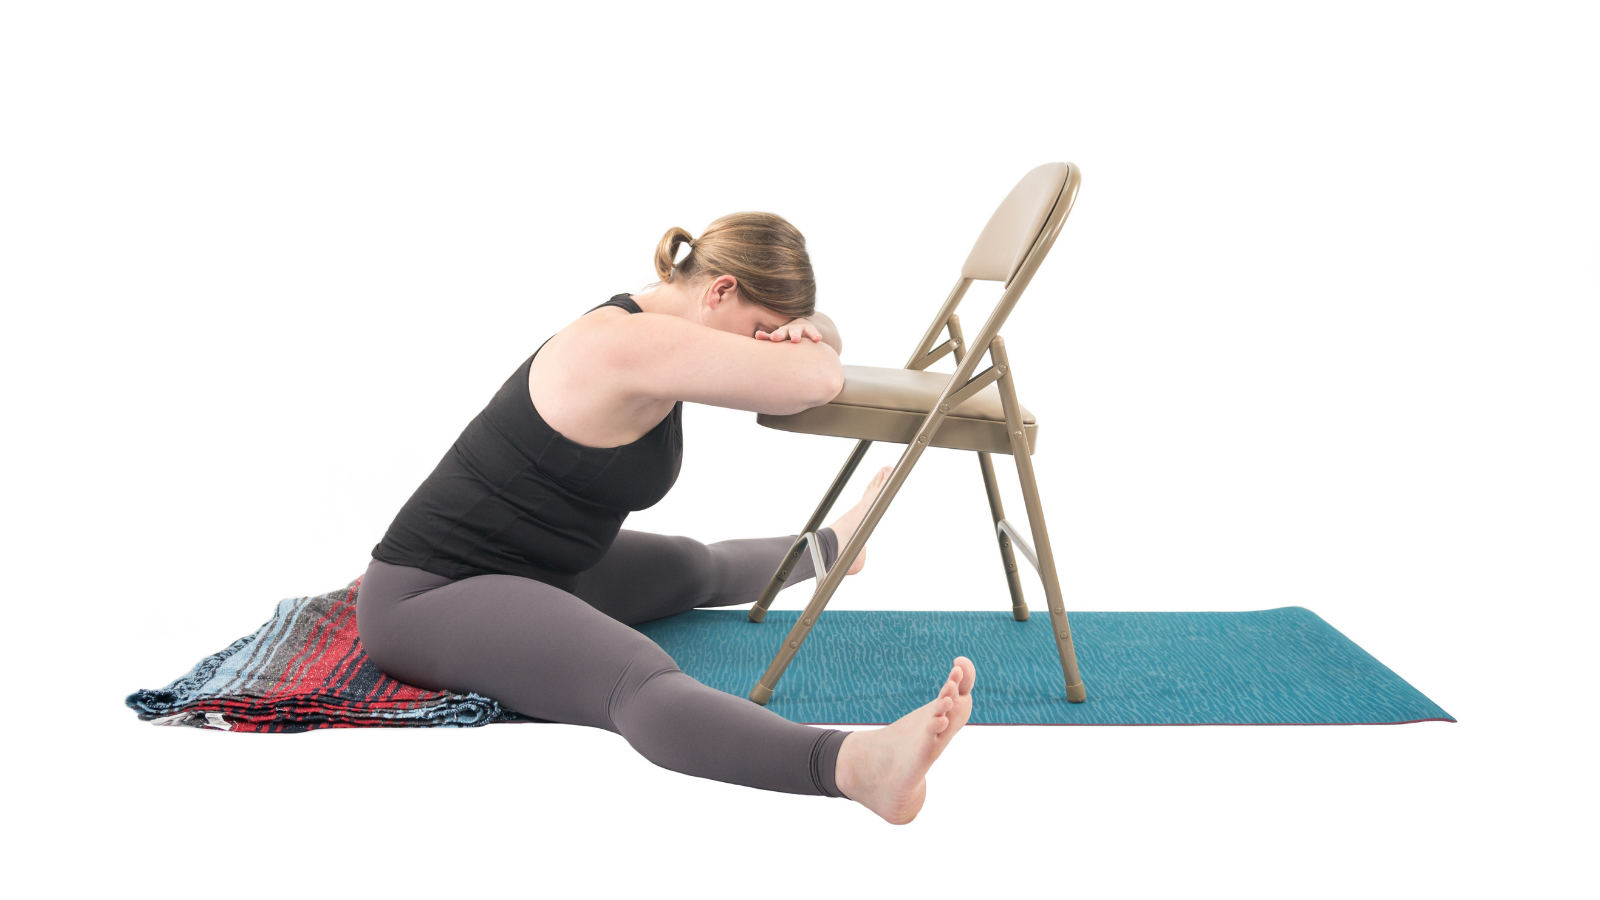 Restorative Forward Fold for calming the mind and body